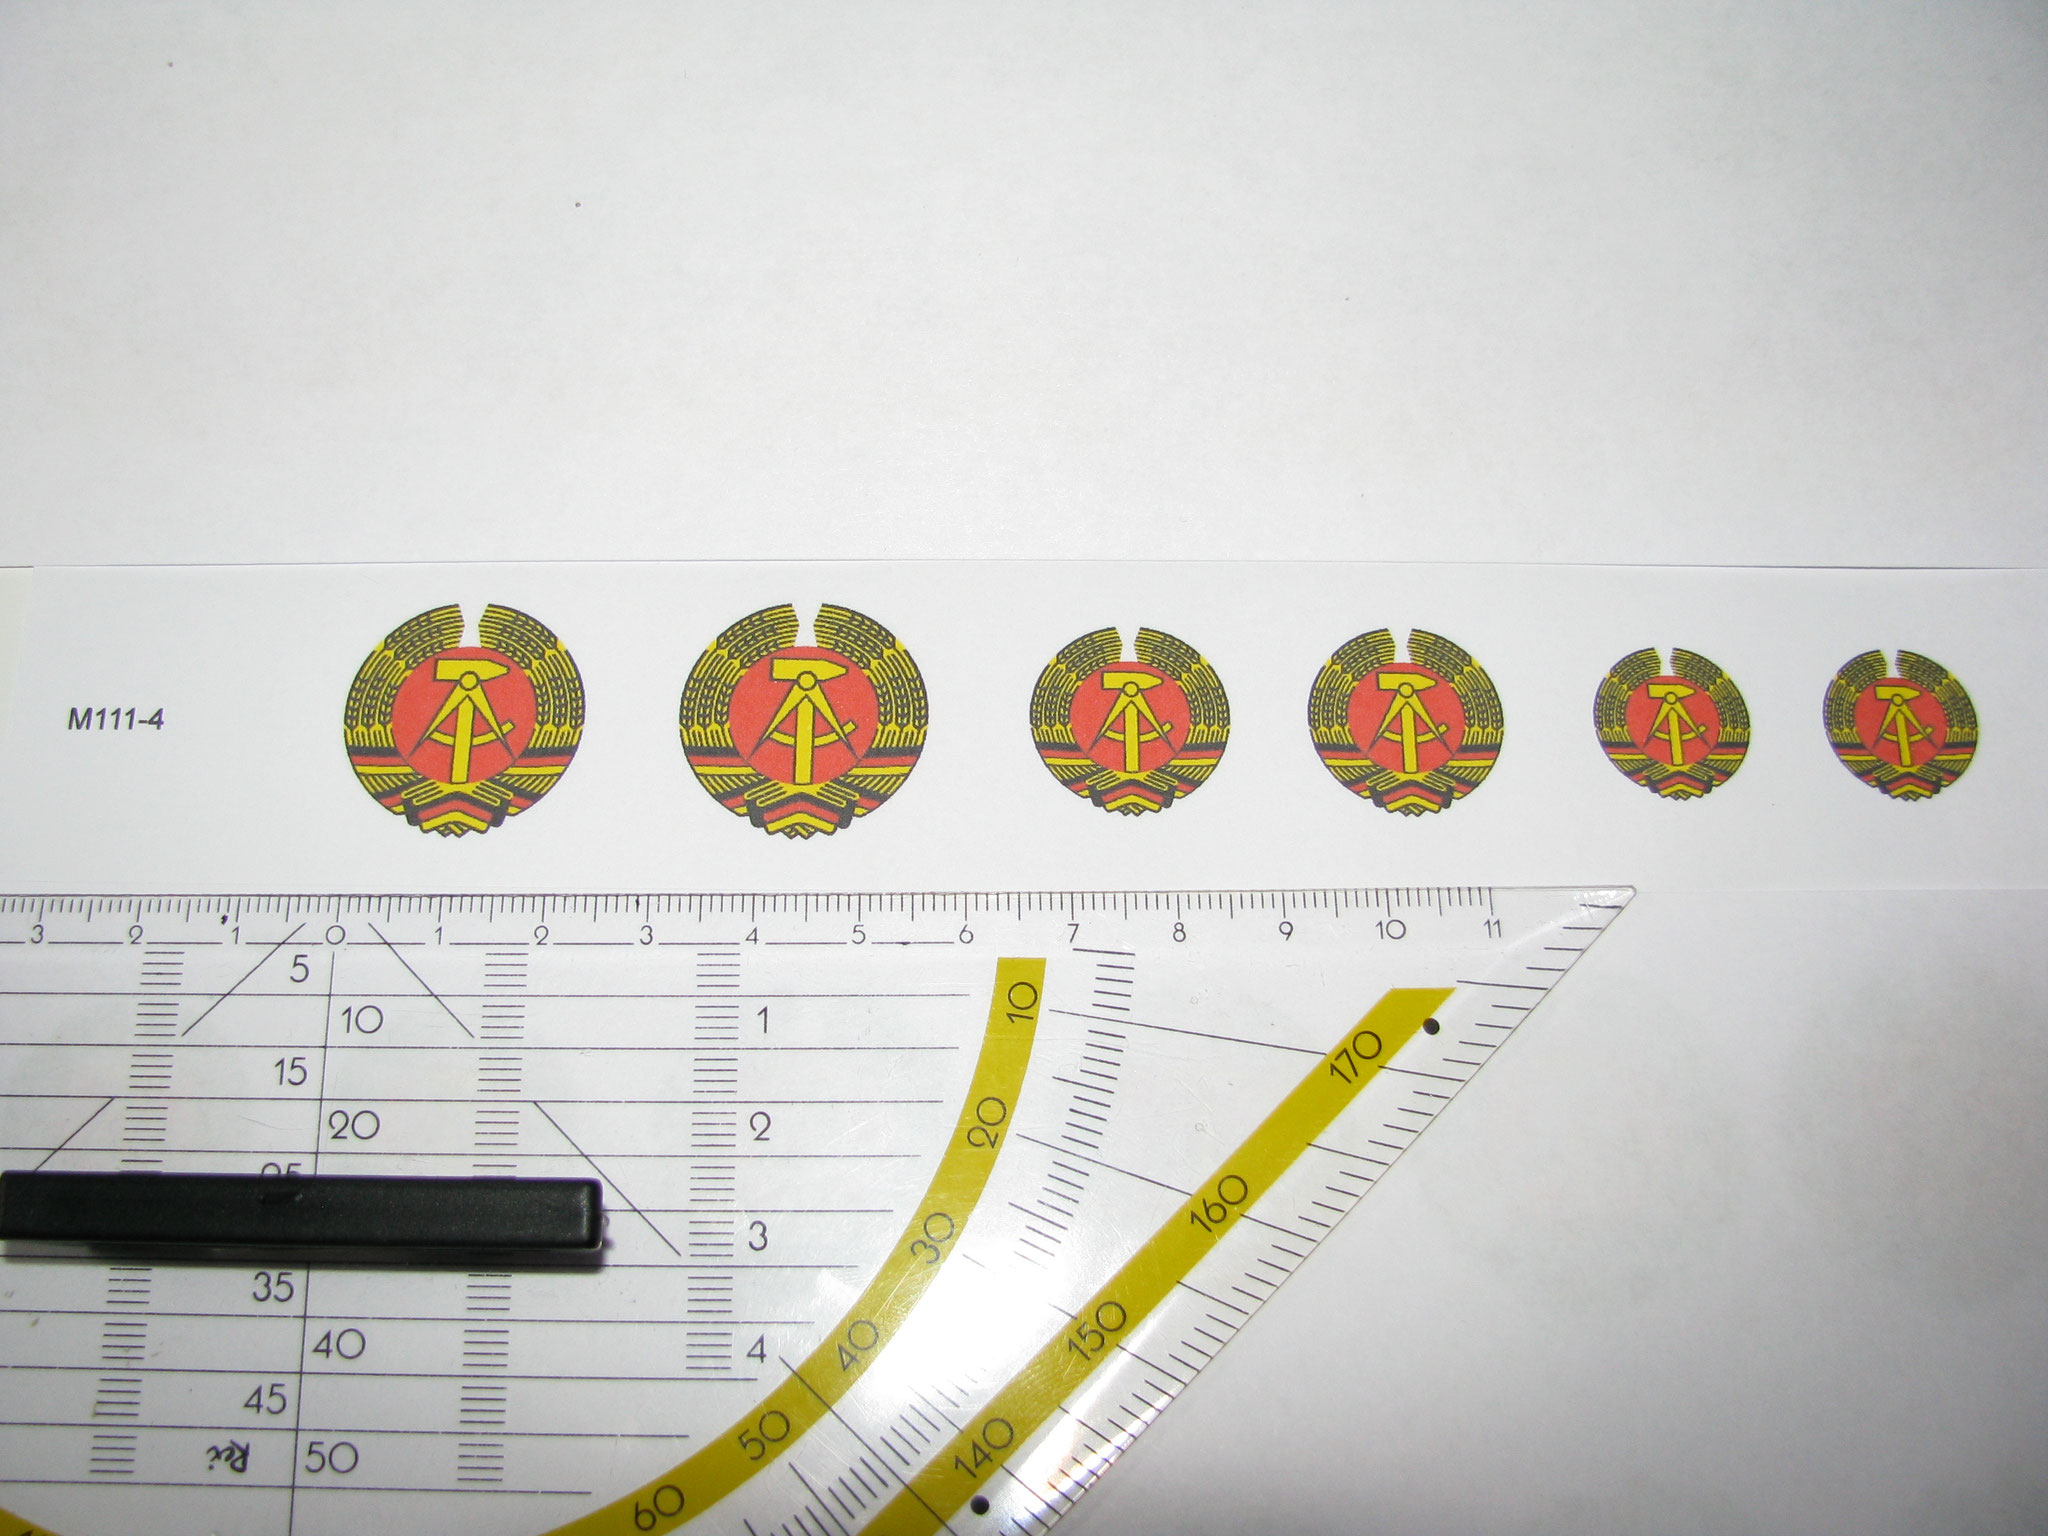 M111-4: DDR Wappen. 6 Decals. Max 25x25mm